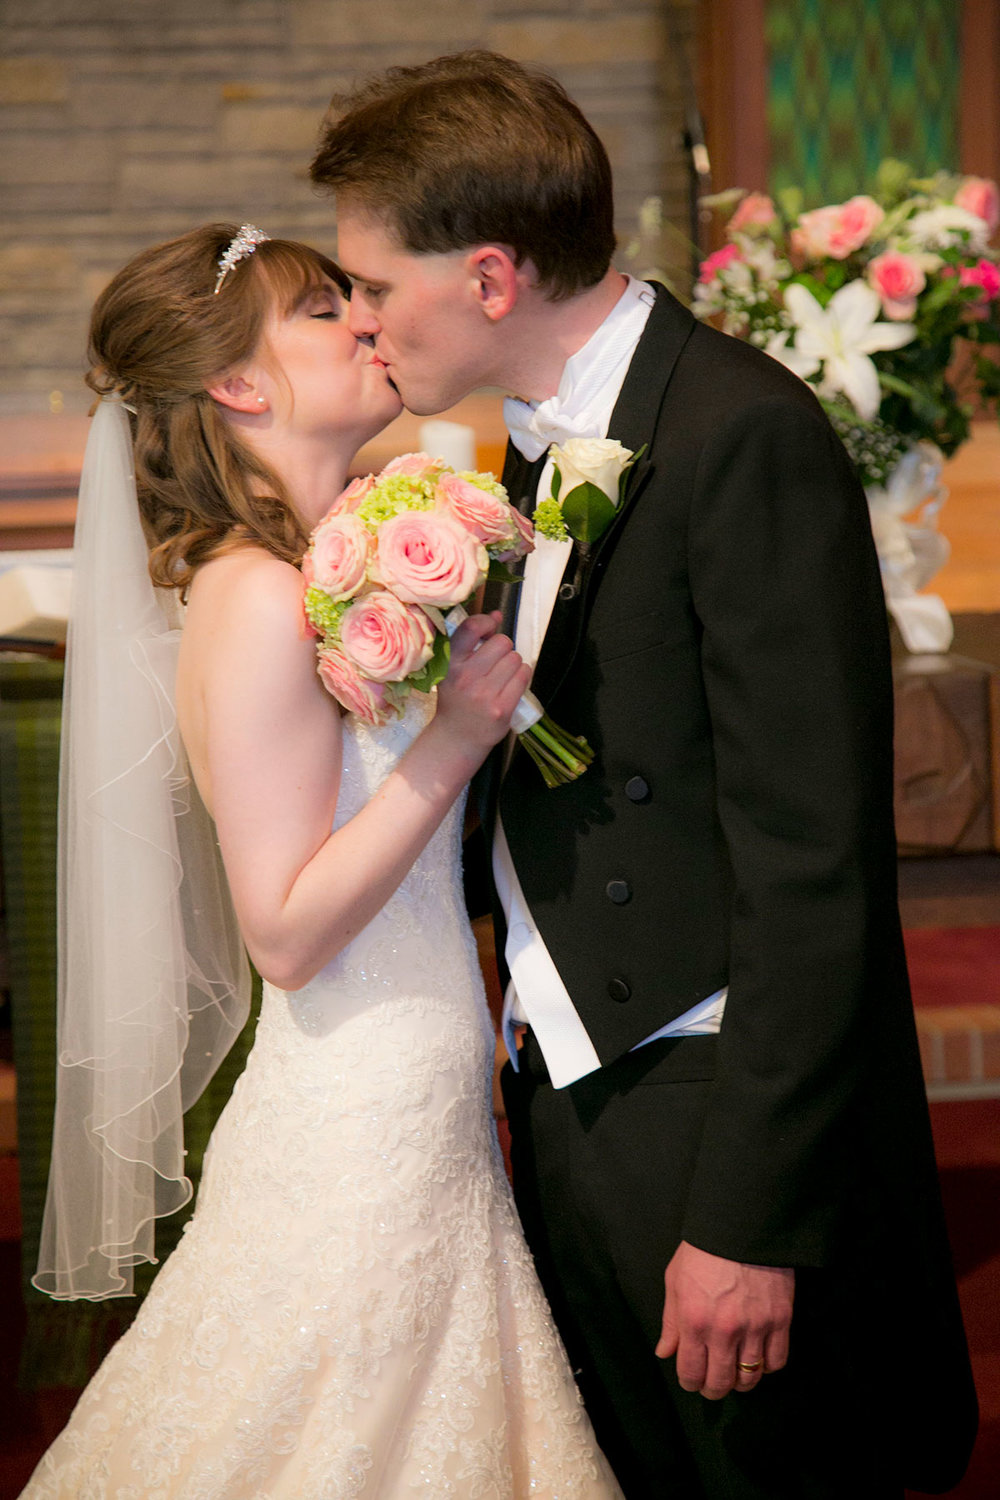 Wedding_Chicago_Rachel_Roberts_004.JPG